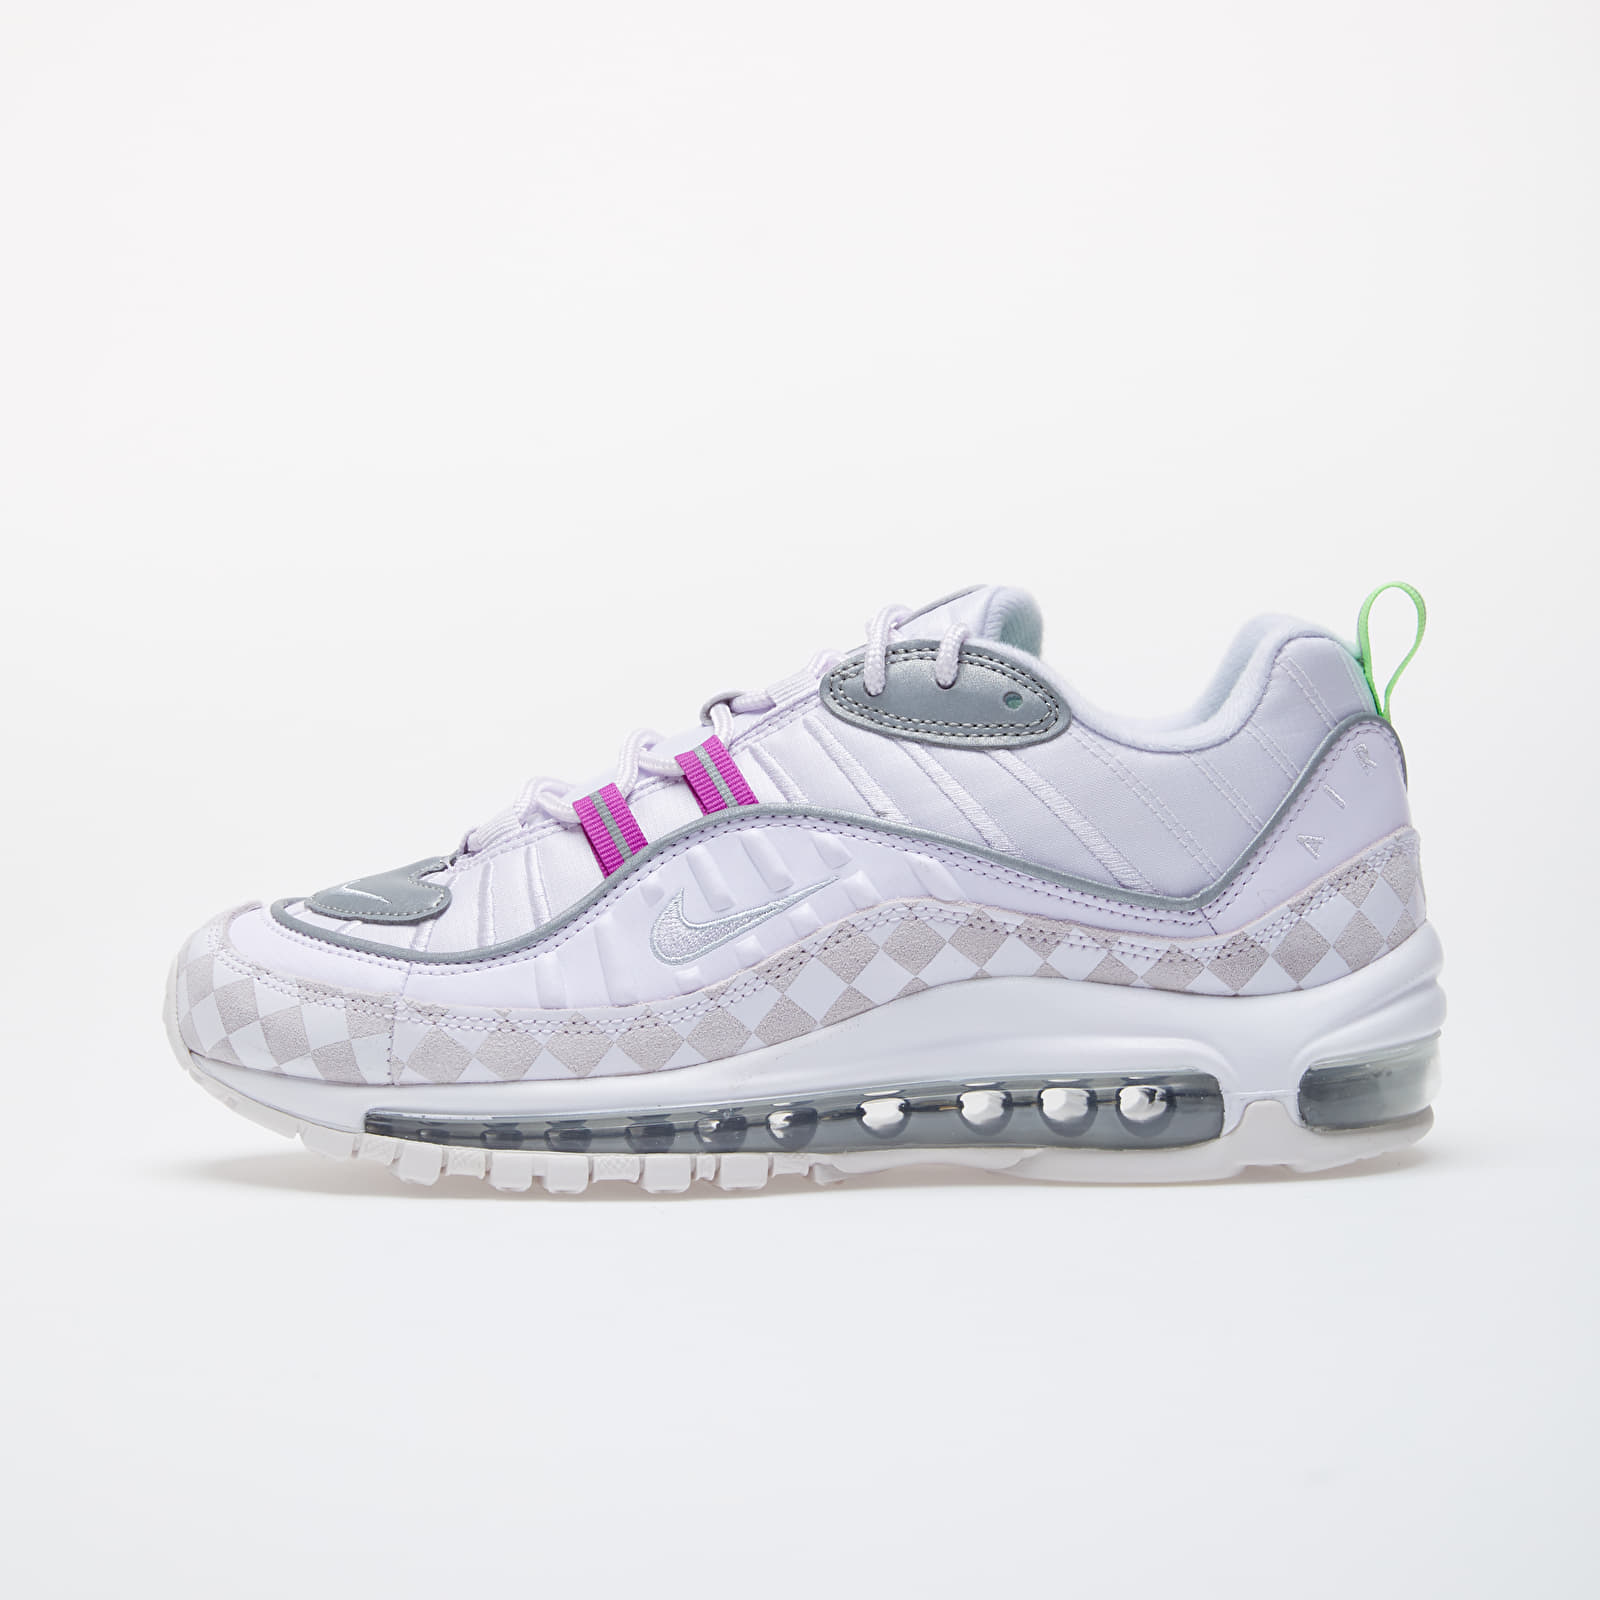 Women's shoes Nike W Air Max 98 Barely Grape/ Barely Grape